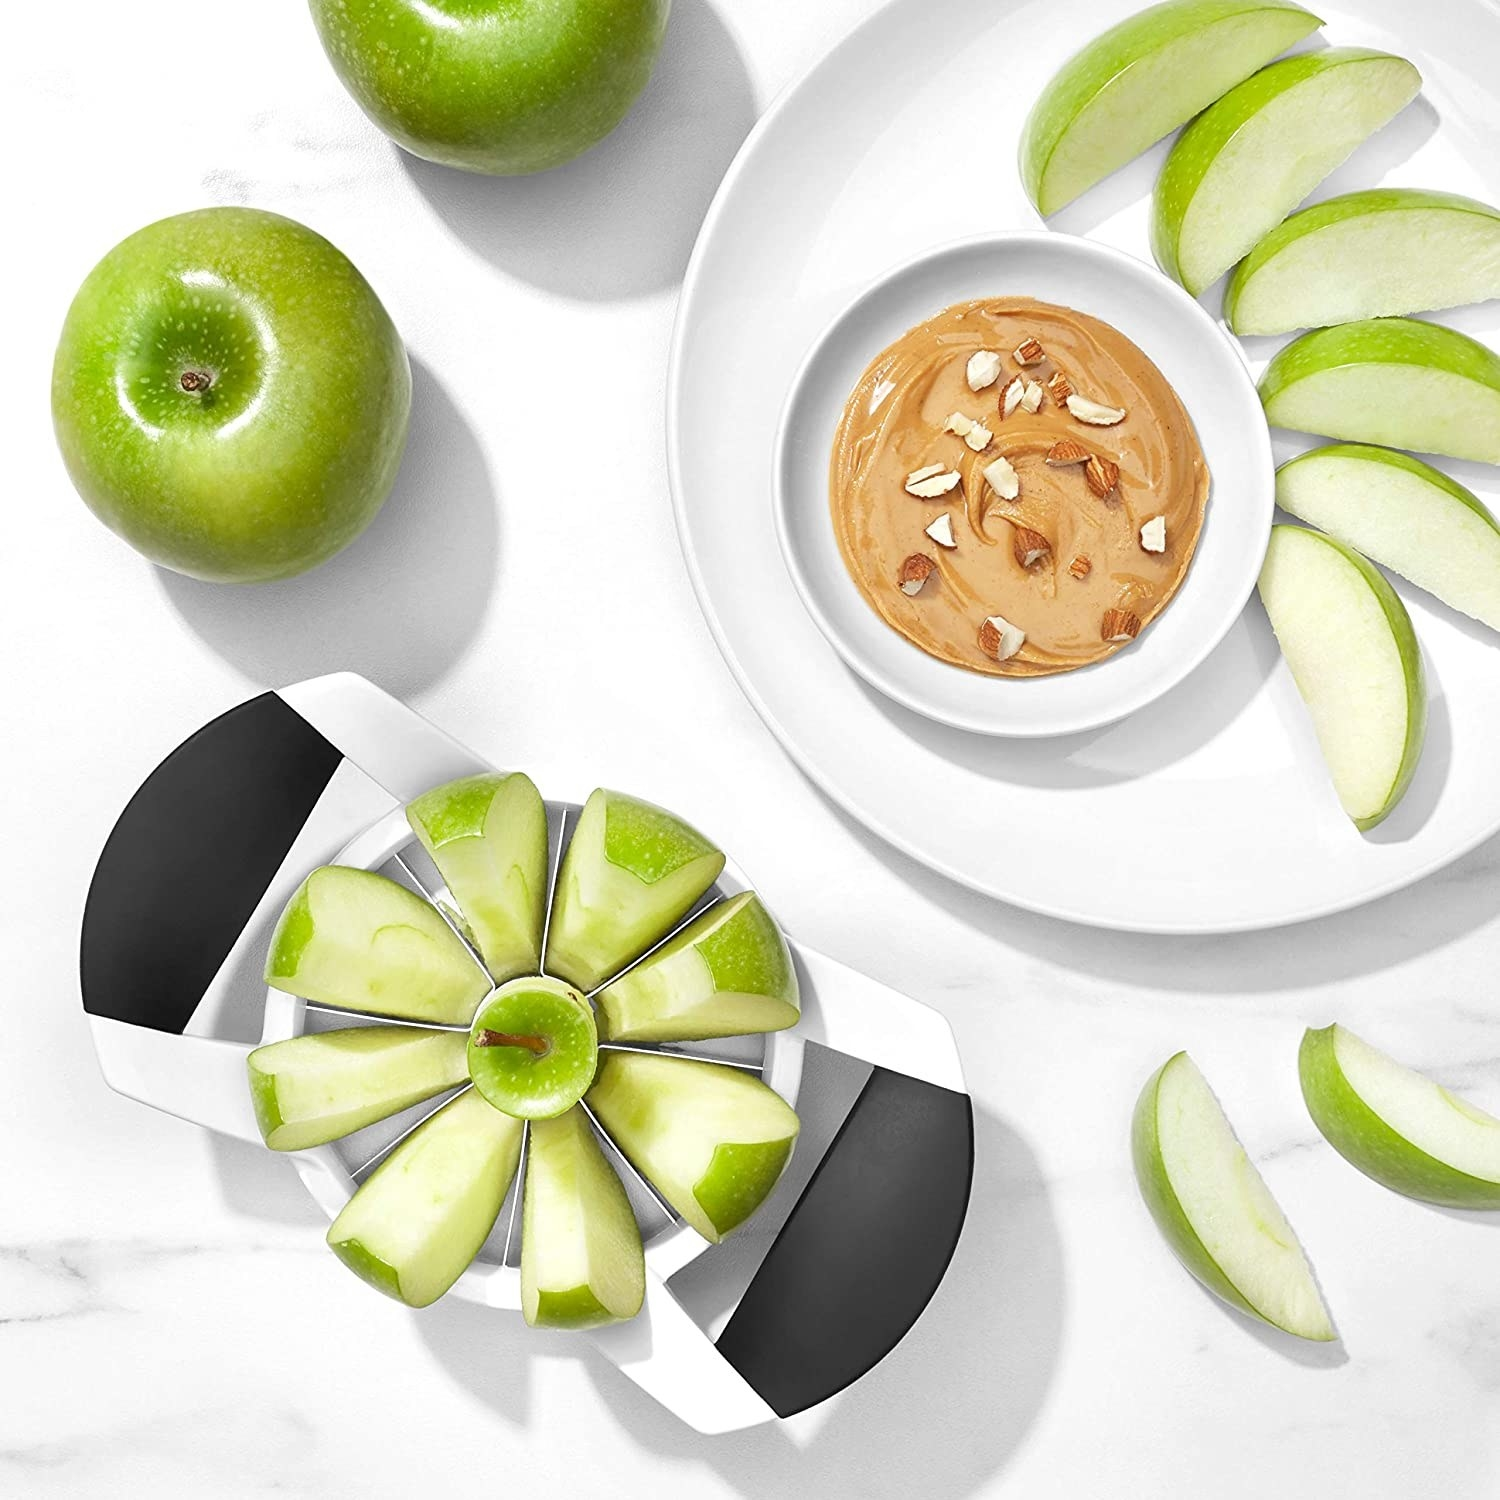 An apple in the slicer next to a plate of apple slices and peanut butter